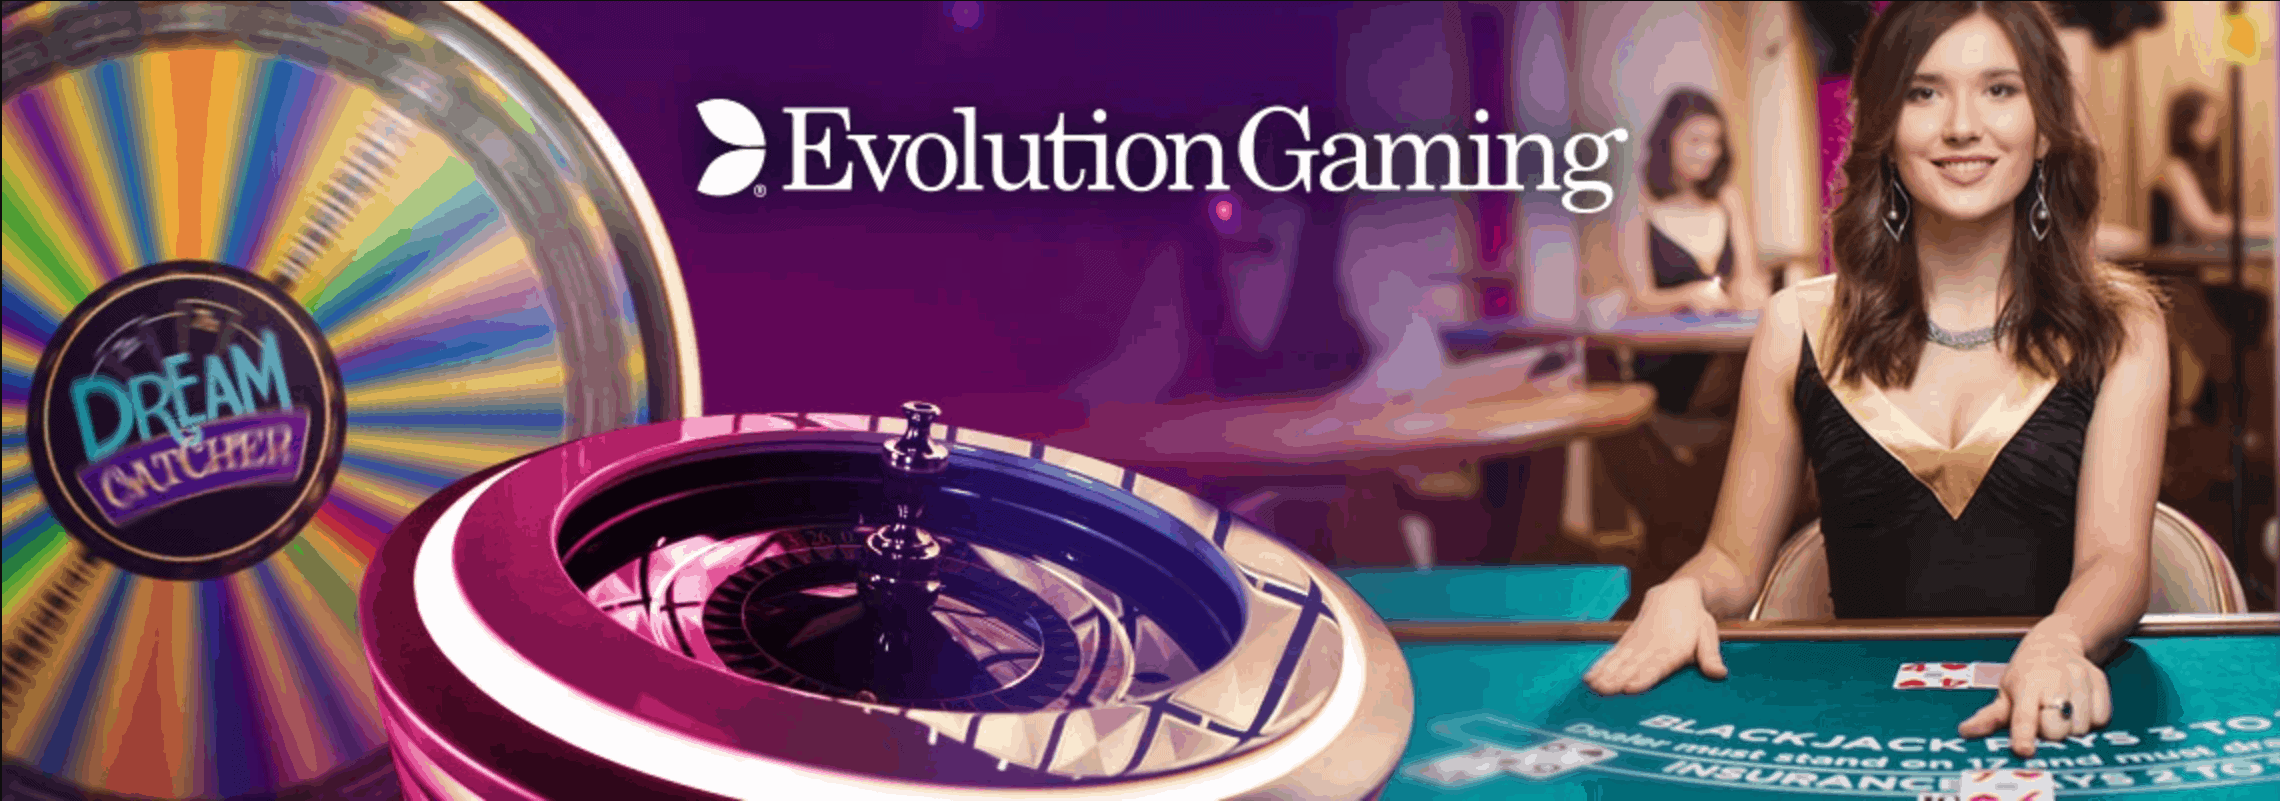 evolution gaming software casinò dal vivo